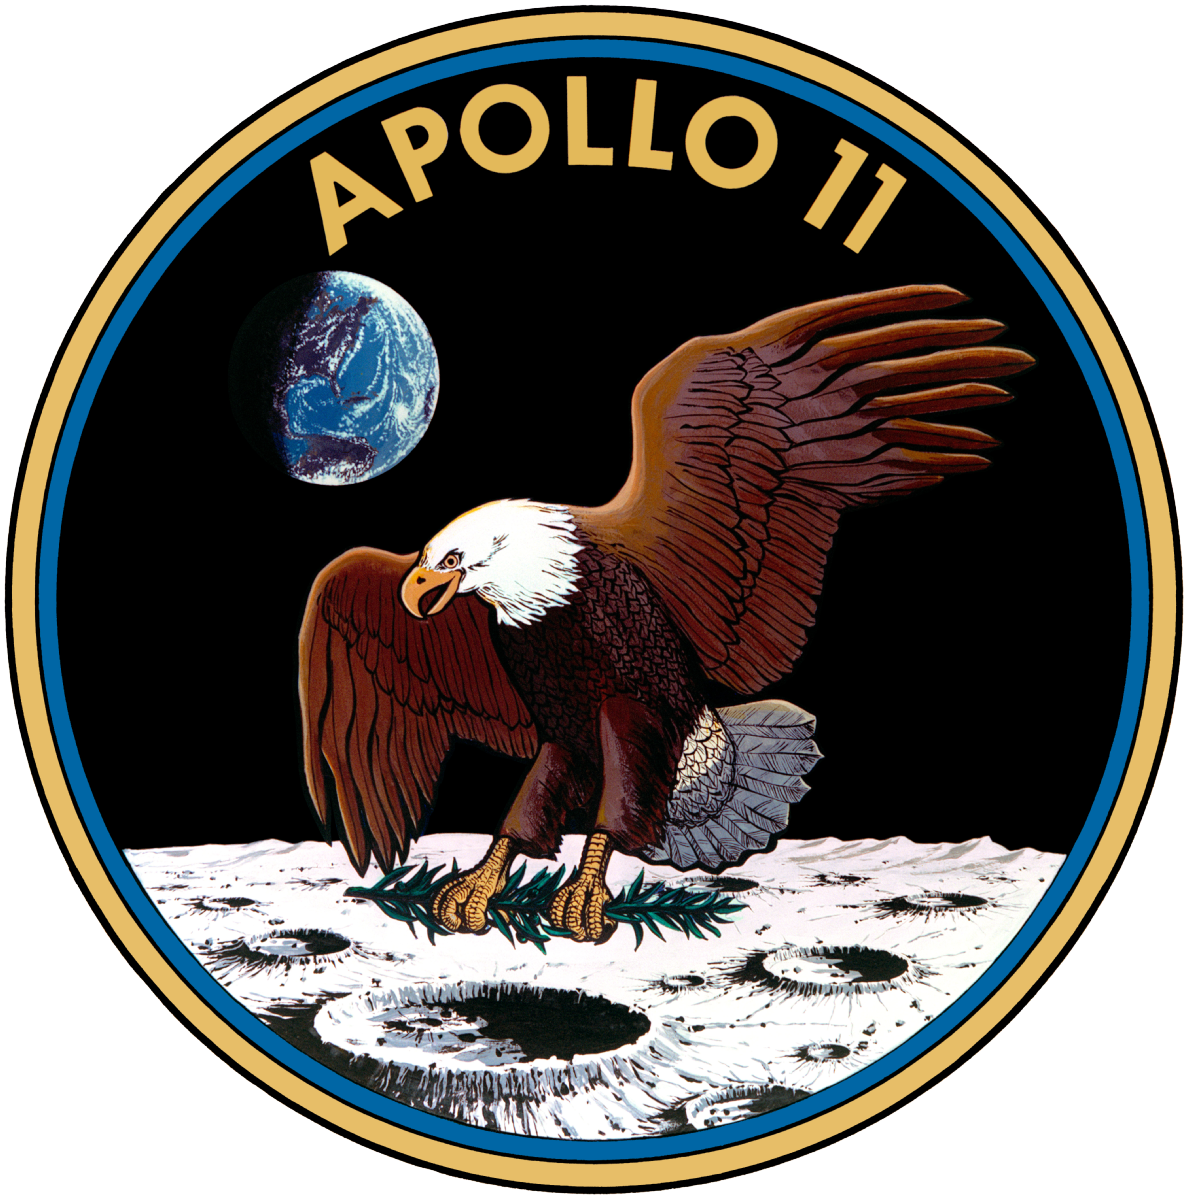 https://rasc.ca/sites/default/files/Apollo%2011%20mission%20patch.png